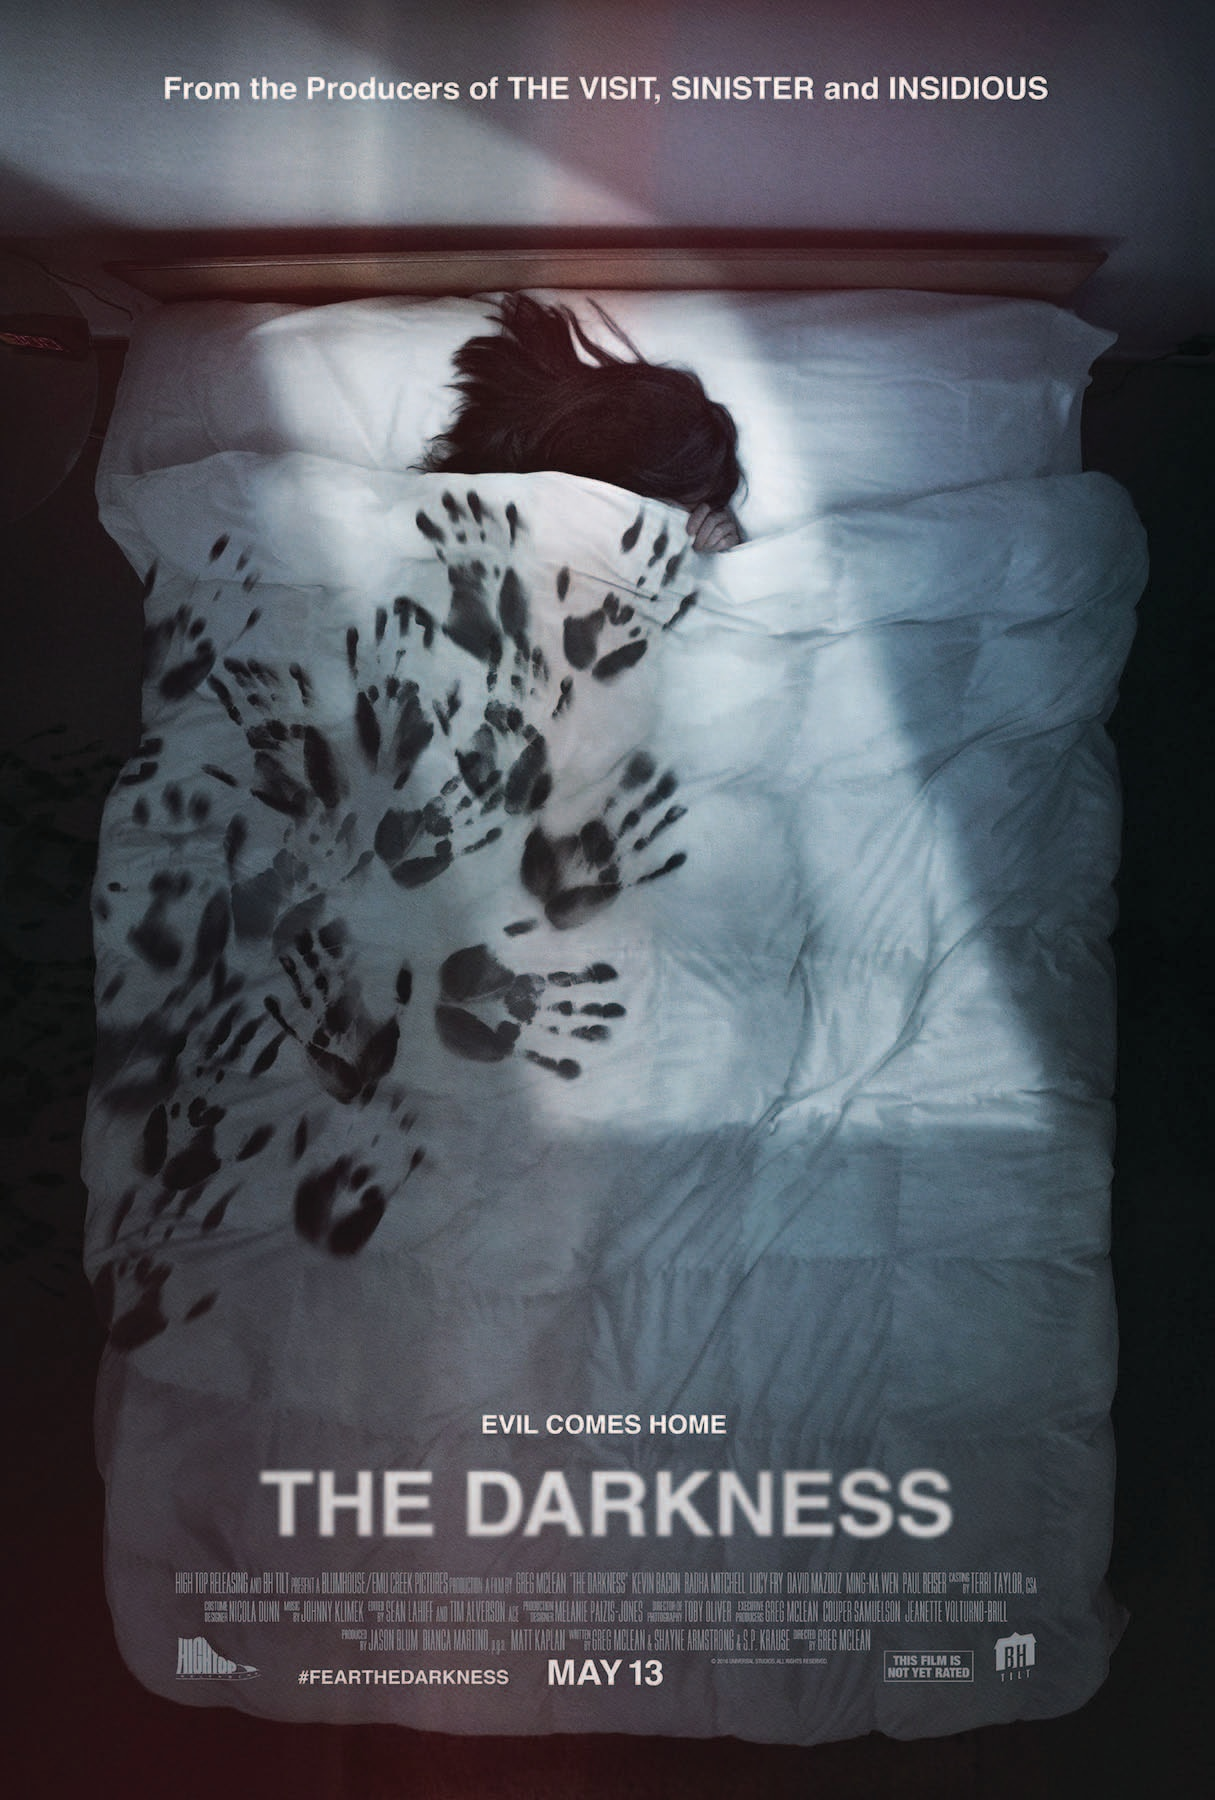 TheDarkness Poster.jpg?zoom=1 - The Darkness - Kevin Bacon Investigates Spooky Treehouse in New Clip